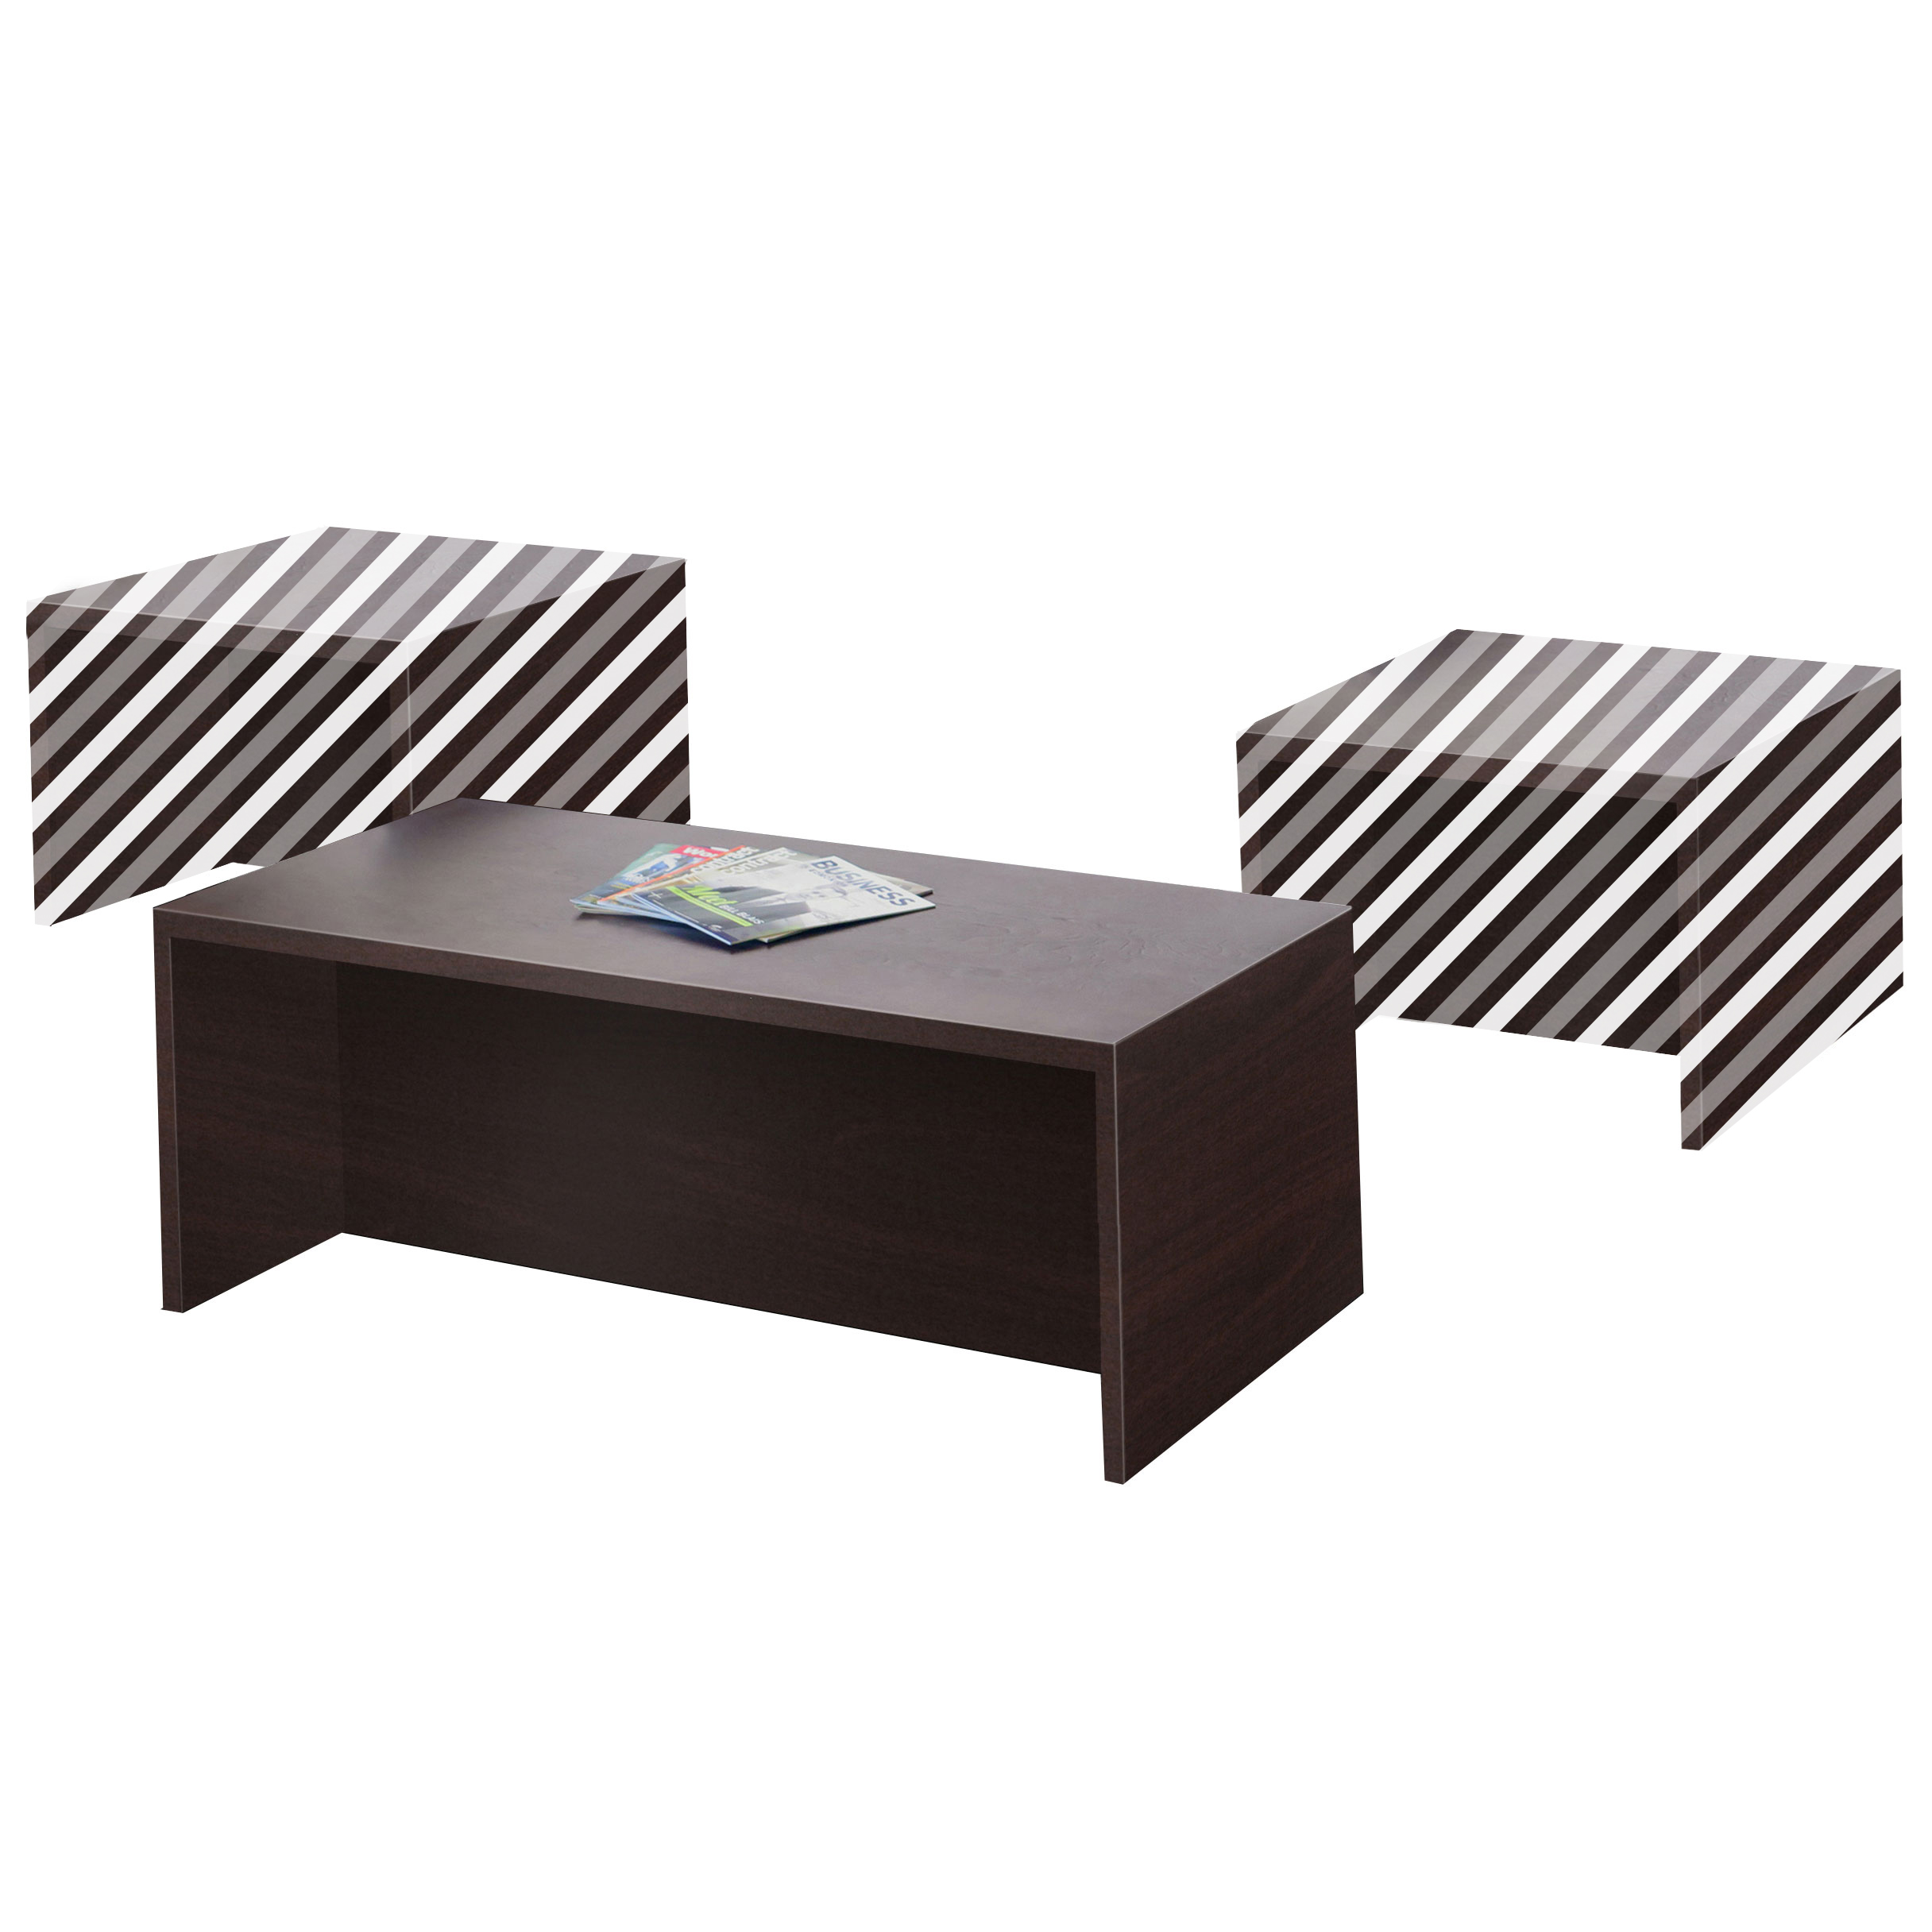 48 X 48 Coffee Table.Timeless 24 X 48 Coffee Table